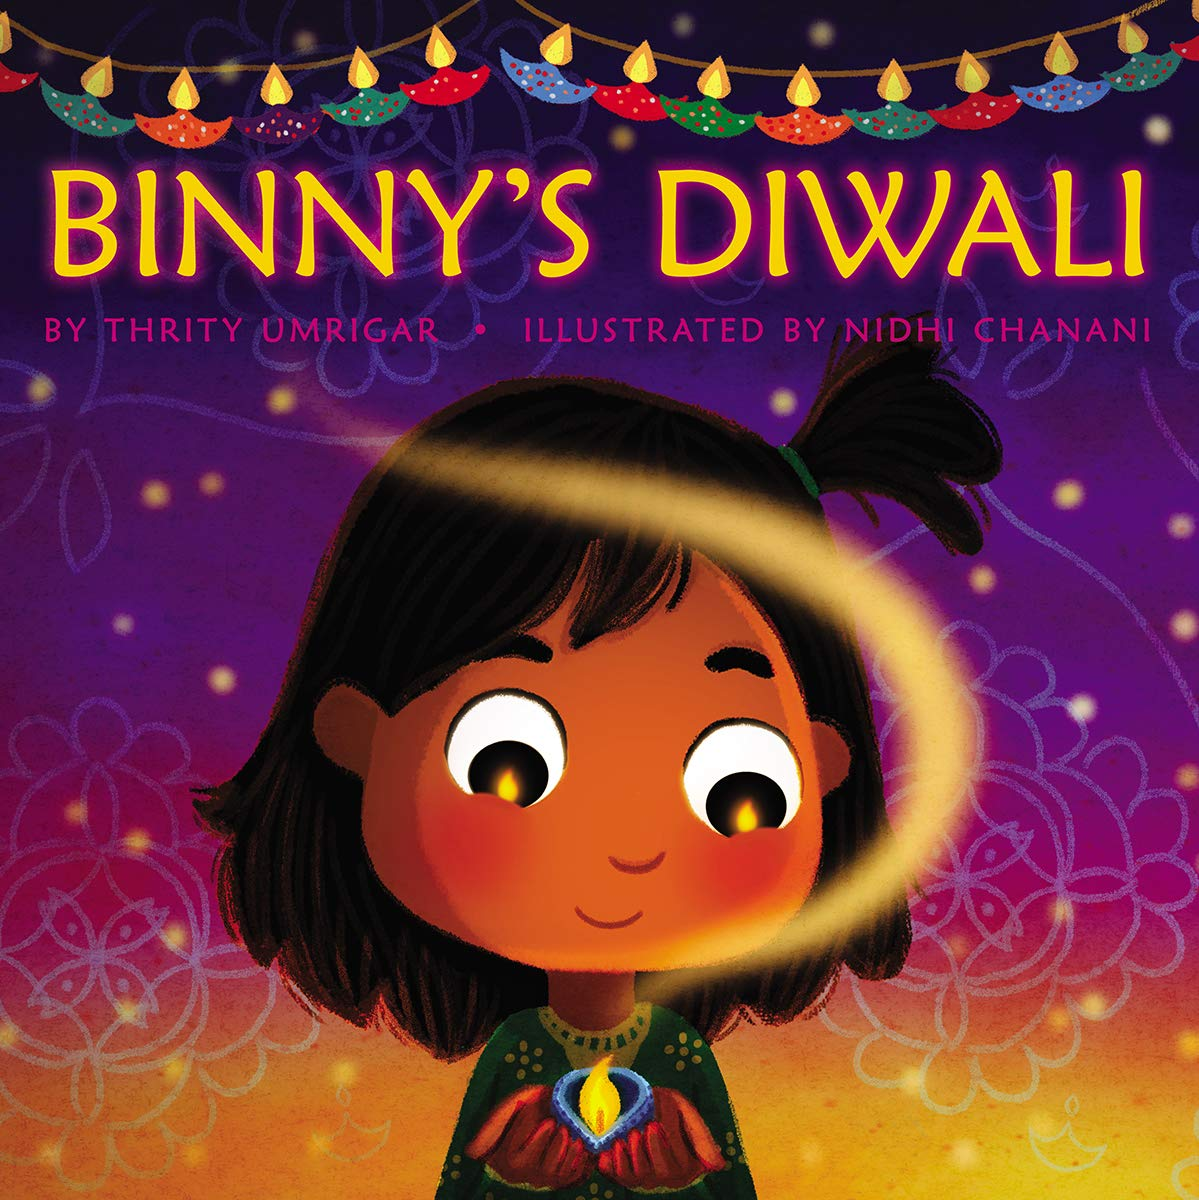 Binny's Diwali by Thrity Umrigar